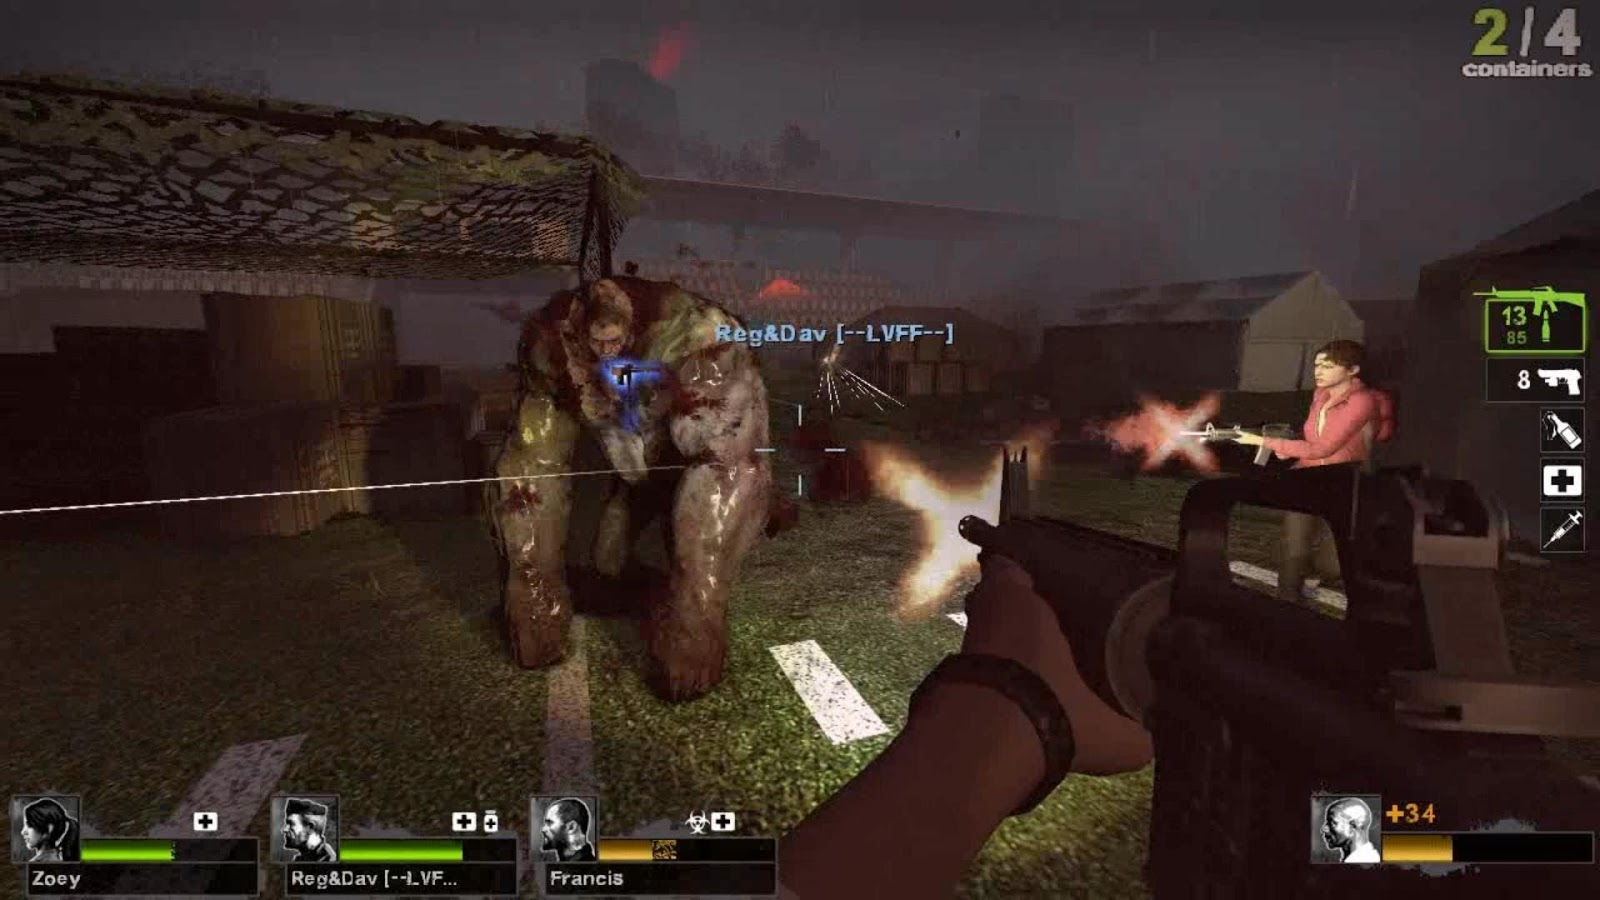 Download Free Full Pc Games Left 4 Dead 2